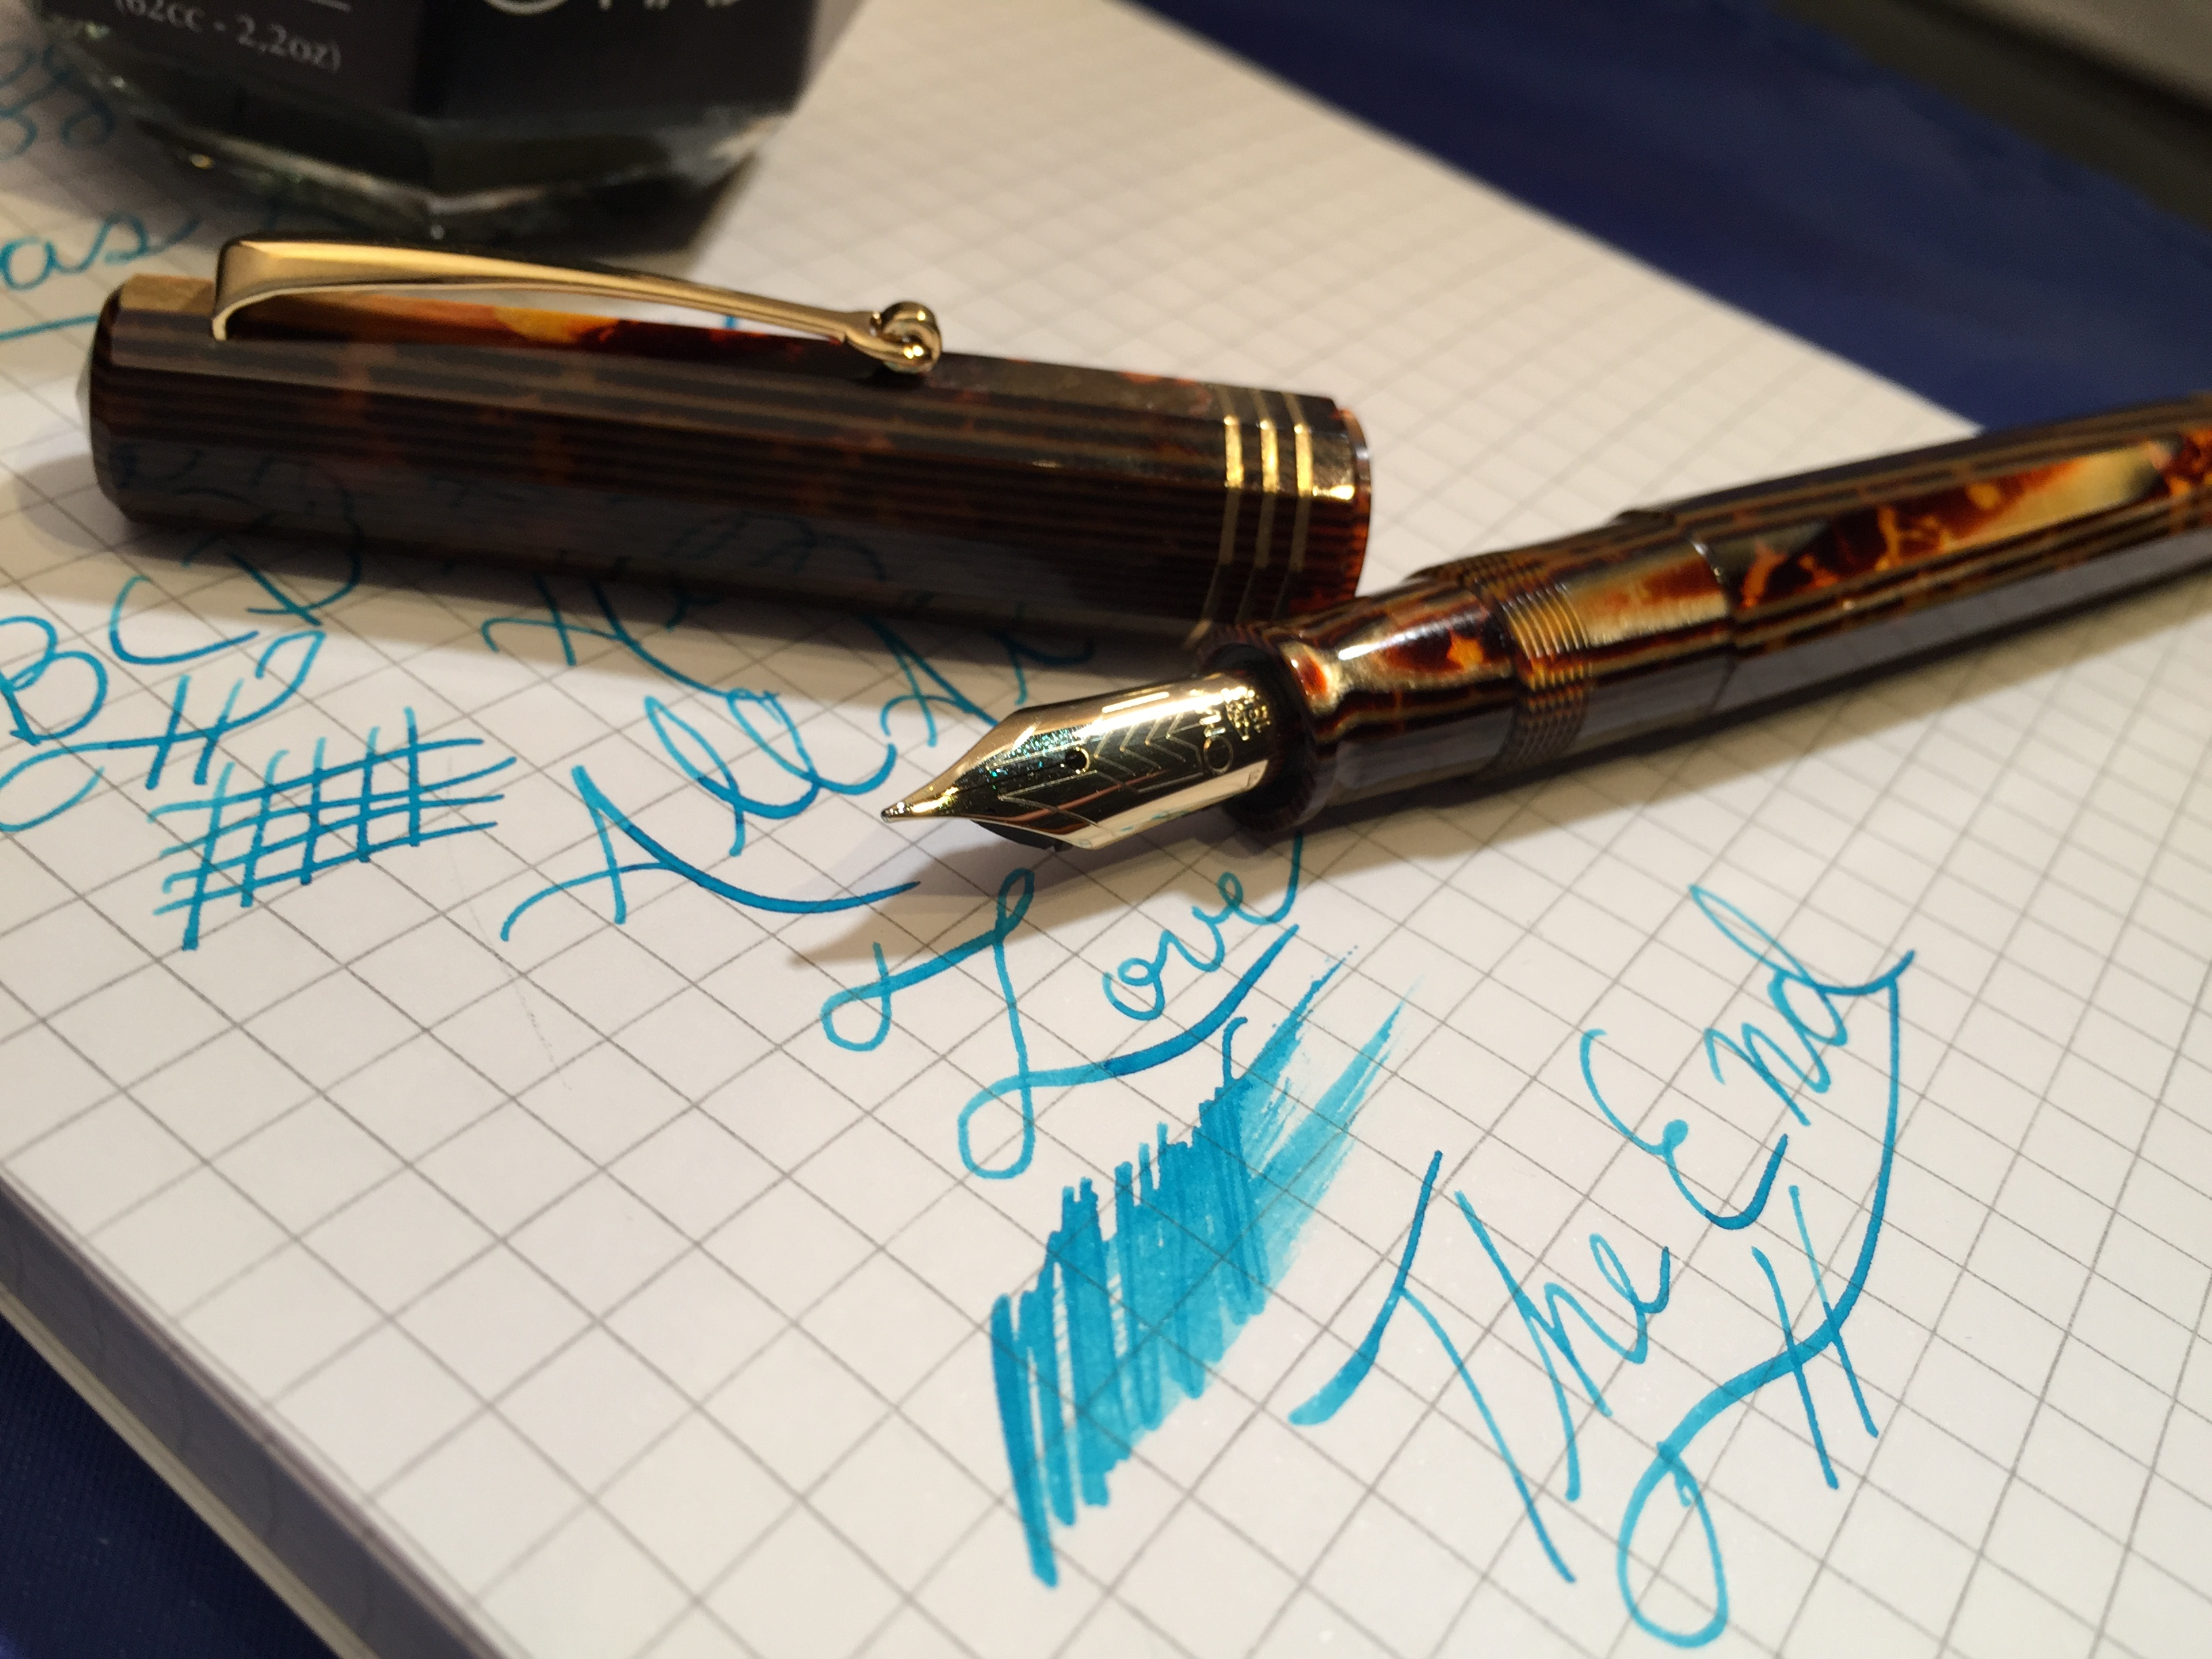 OMAS Paragon LE Arco Celluloid Review